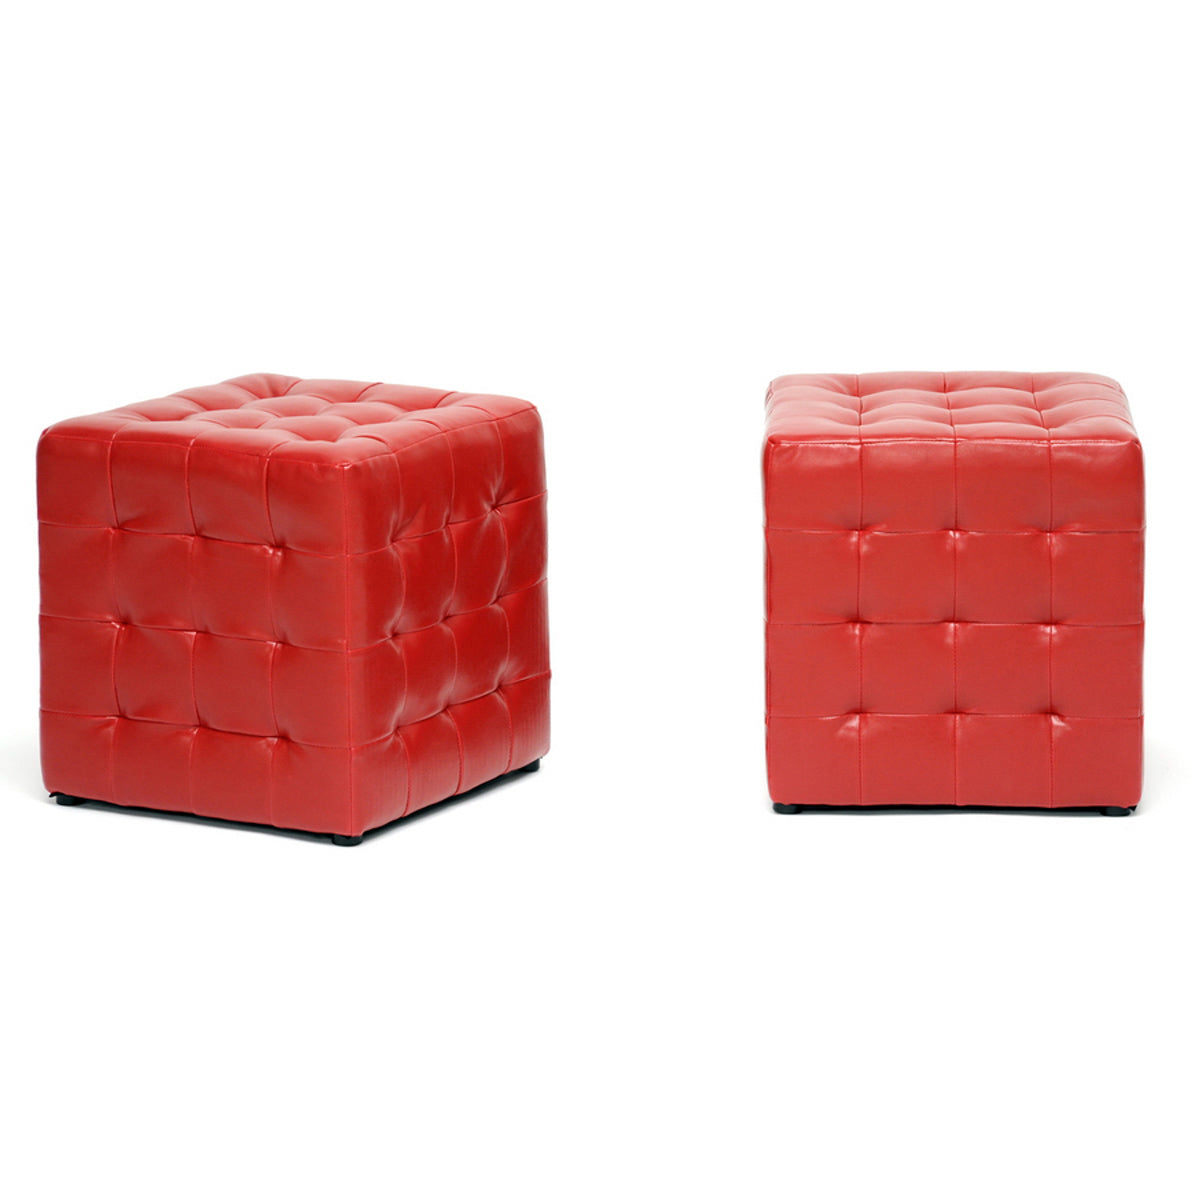 Baxton Studio Siskal Red Modern Cube Ottoman (Set of 2) Baxton Studio-ottomans-Minimal And Modern - 1